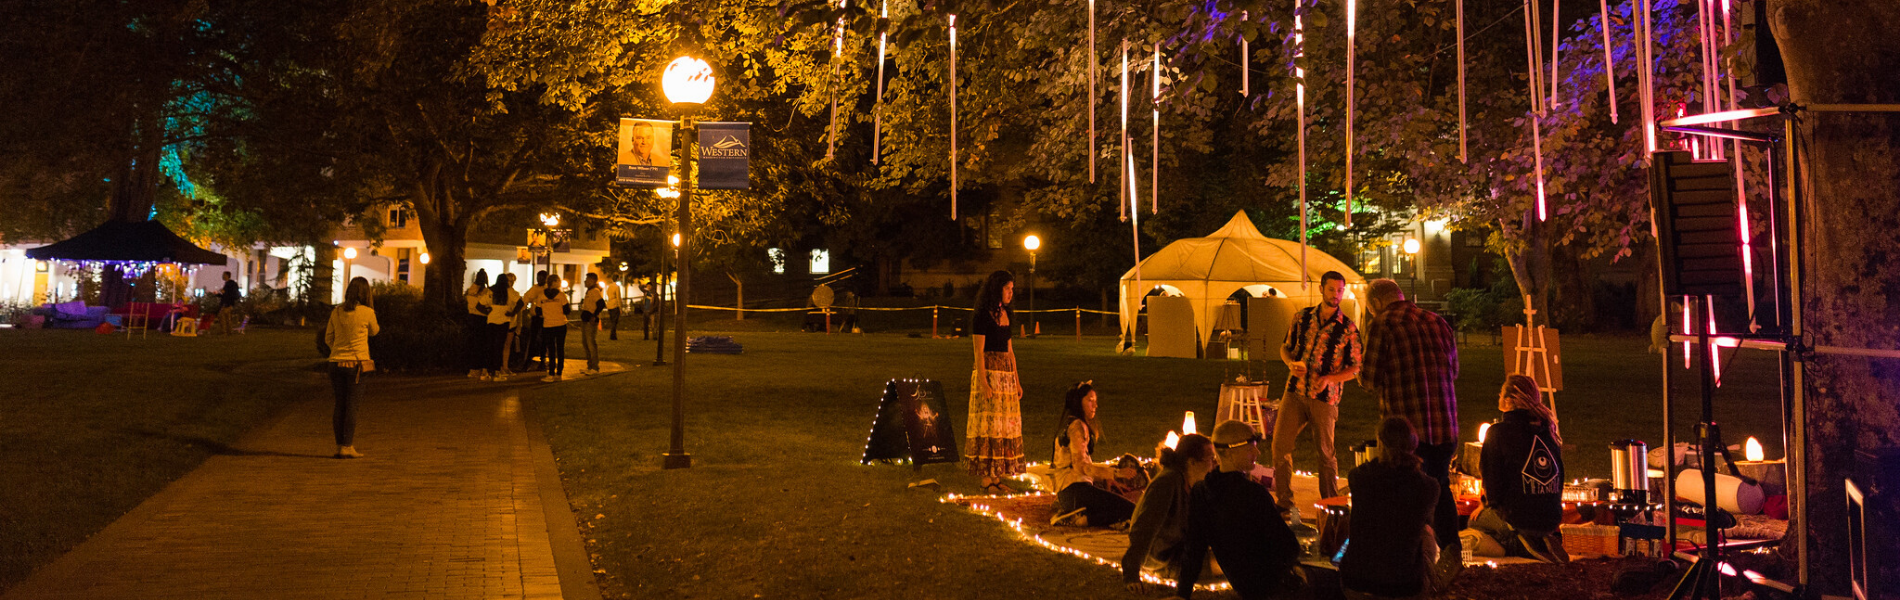 photo of a night market on the WWU Campus